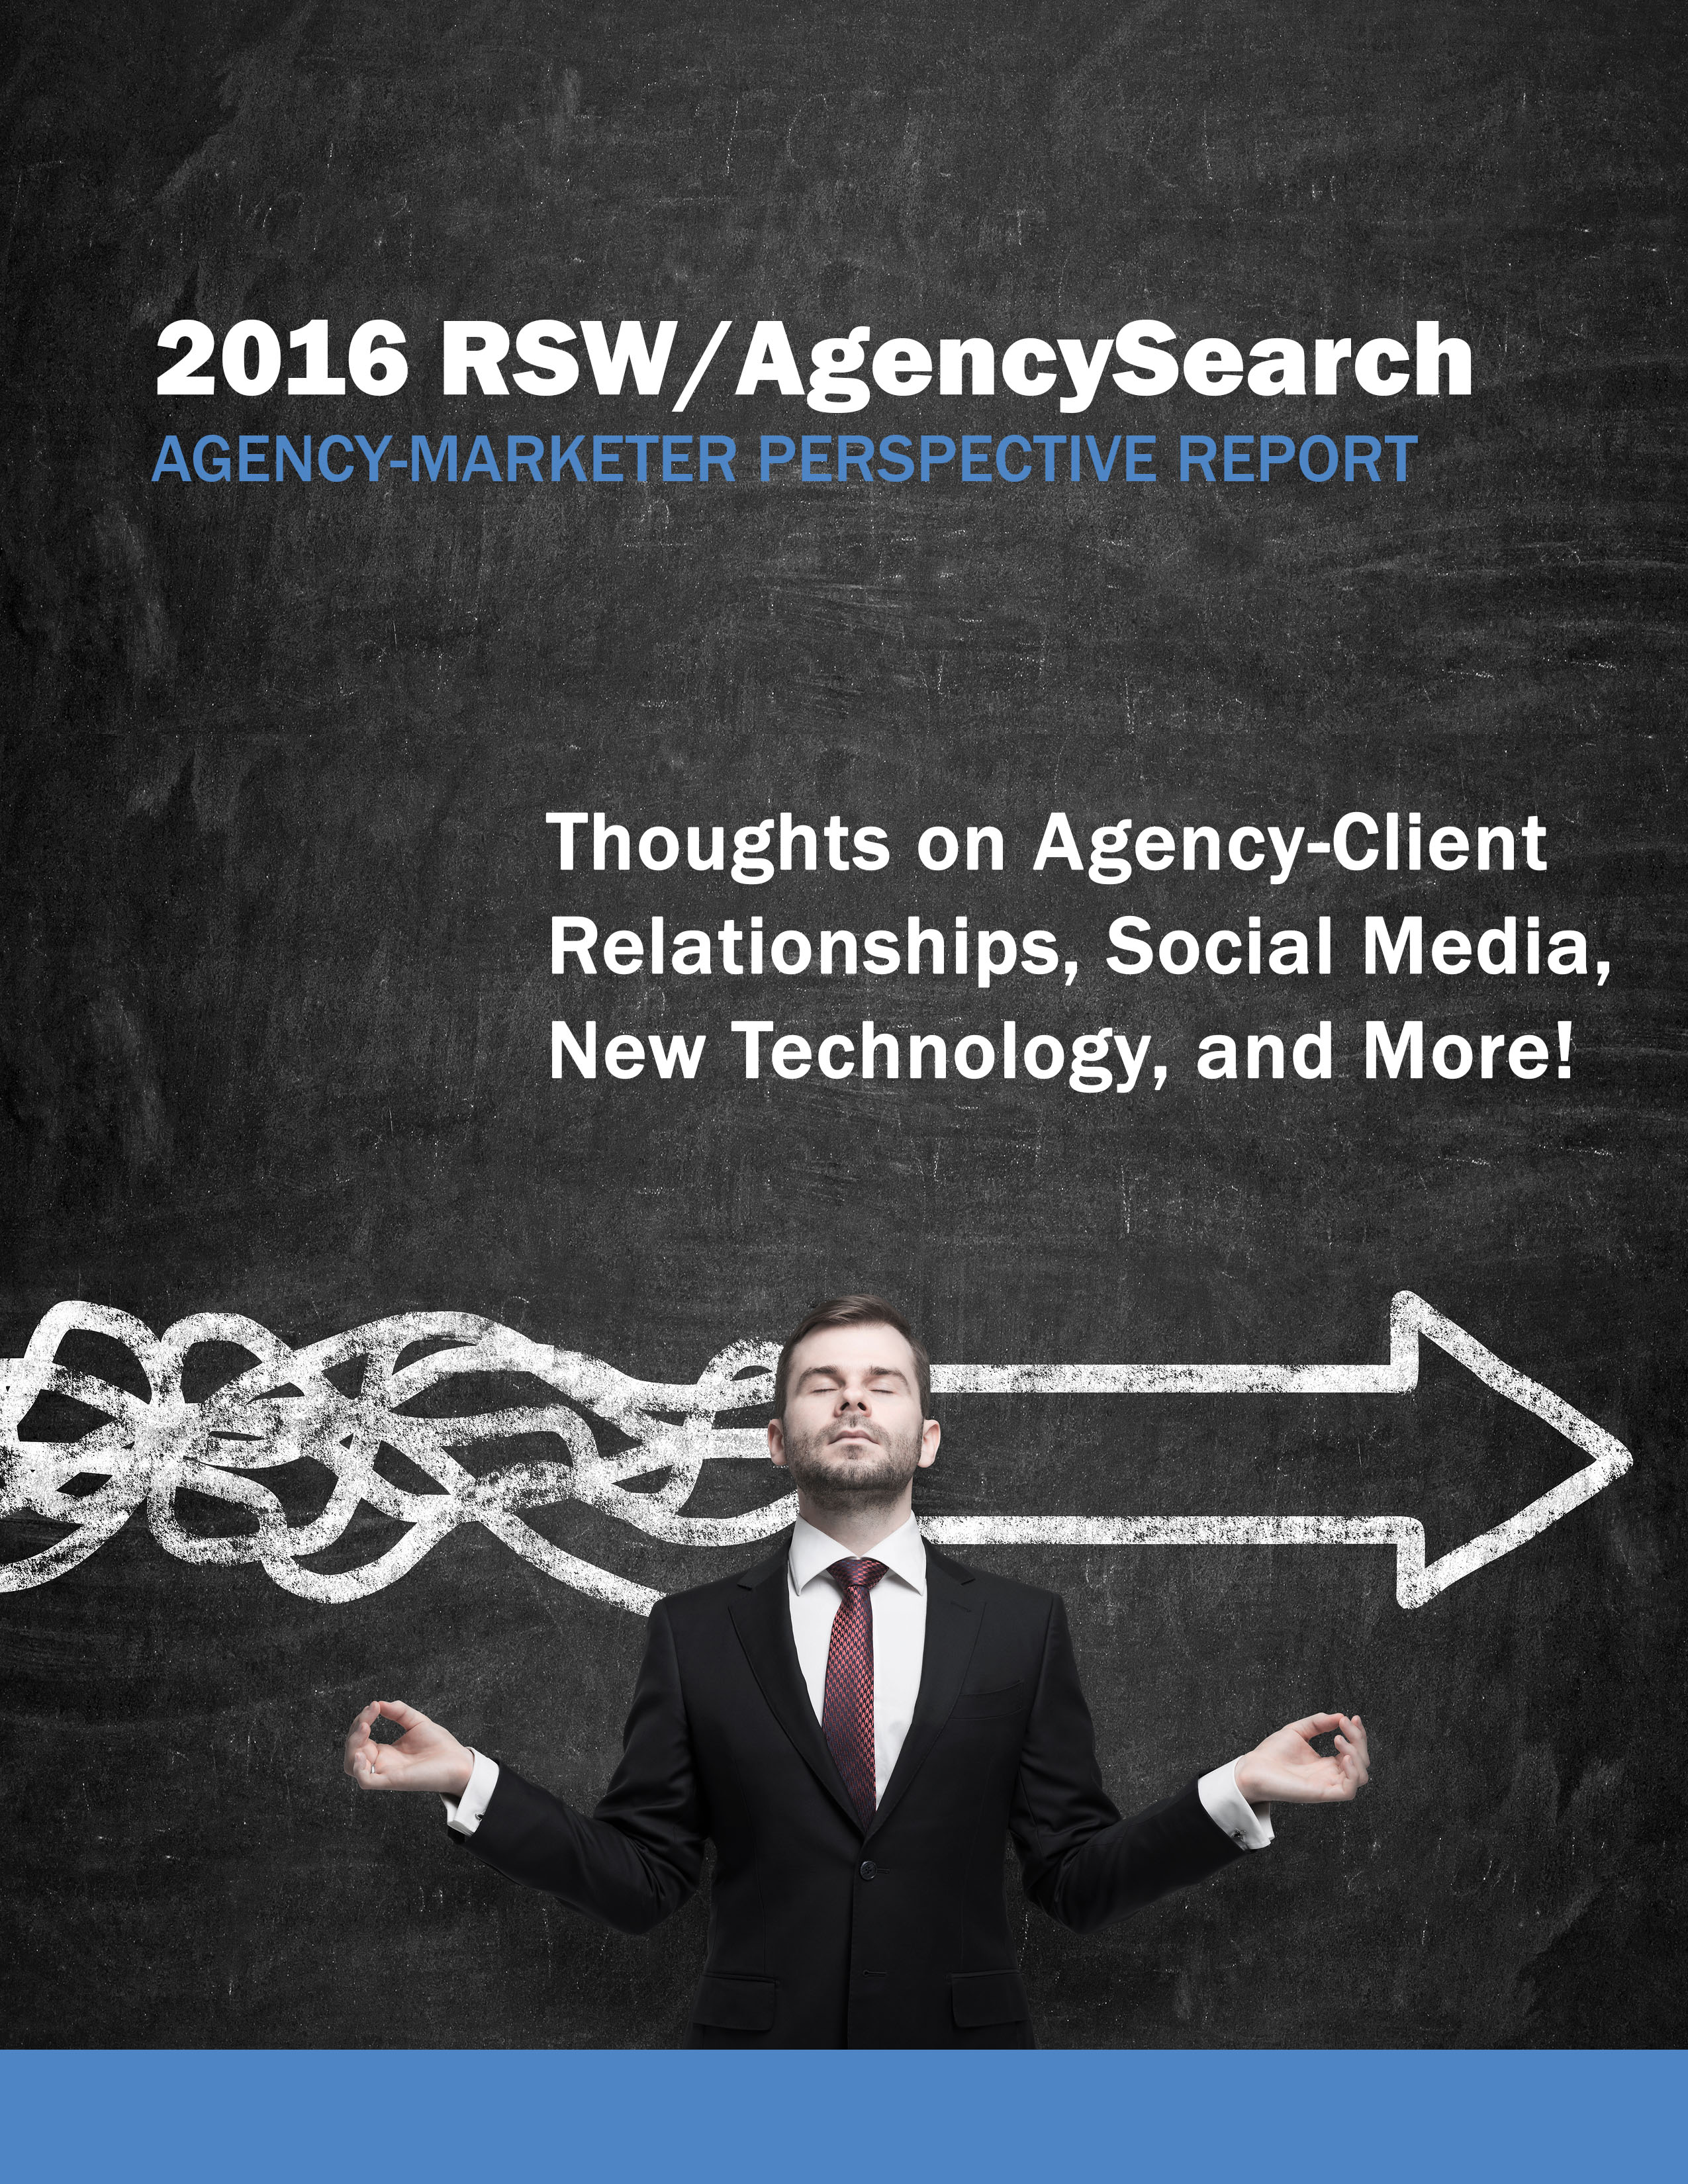 Industry Insight Reports | 2016 Agency-Marketer Perspective Report